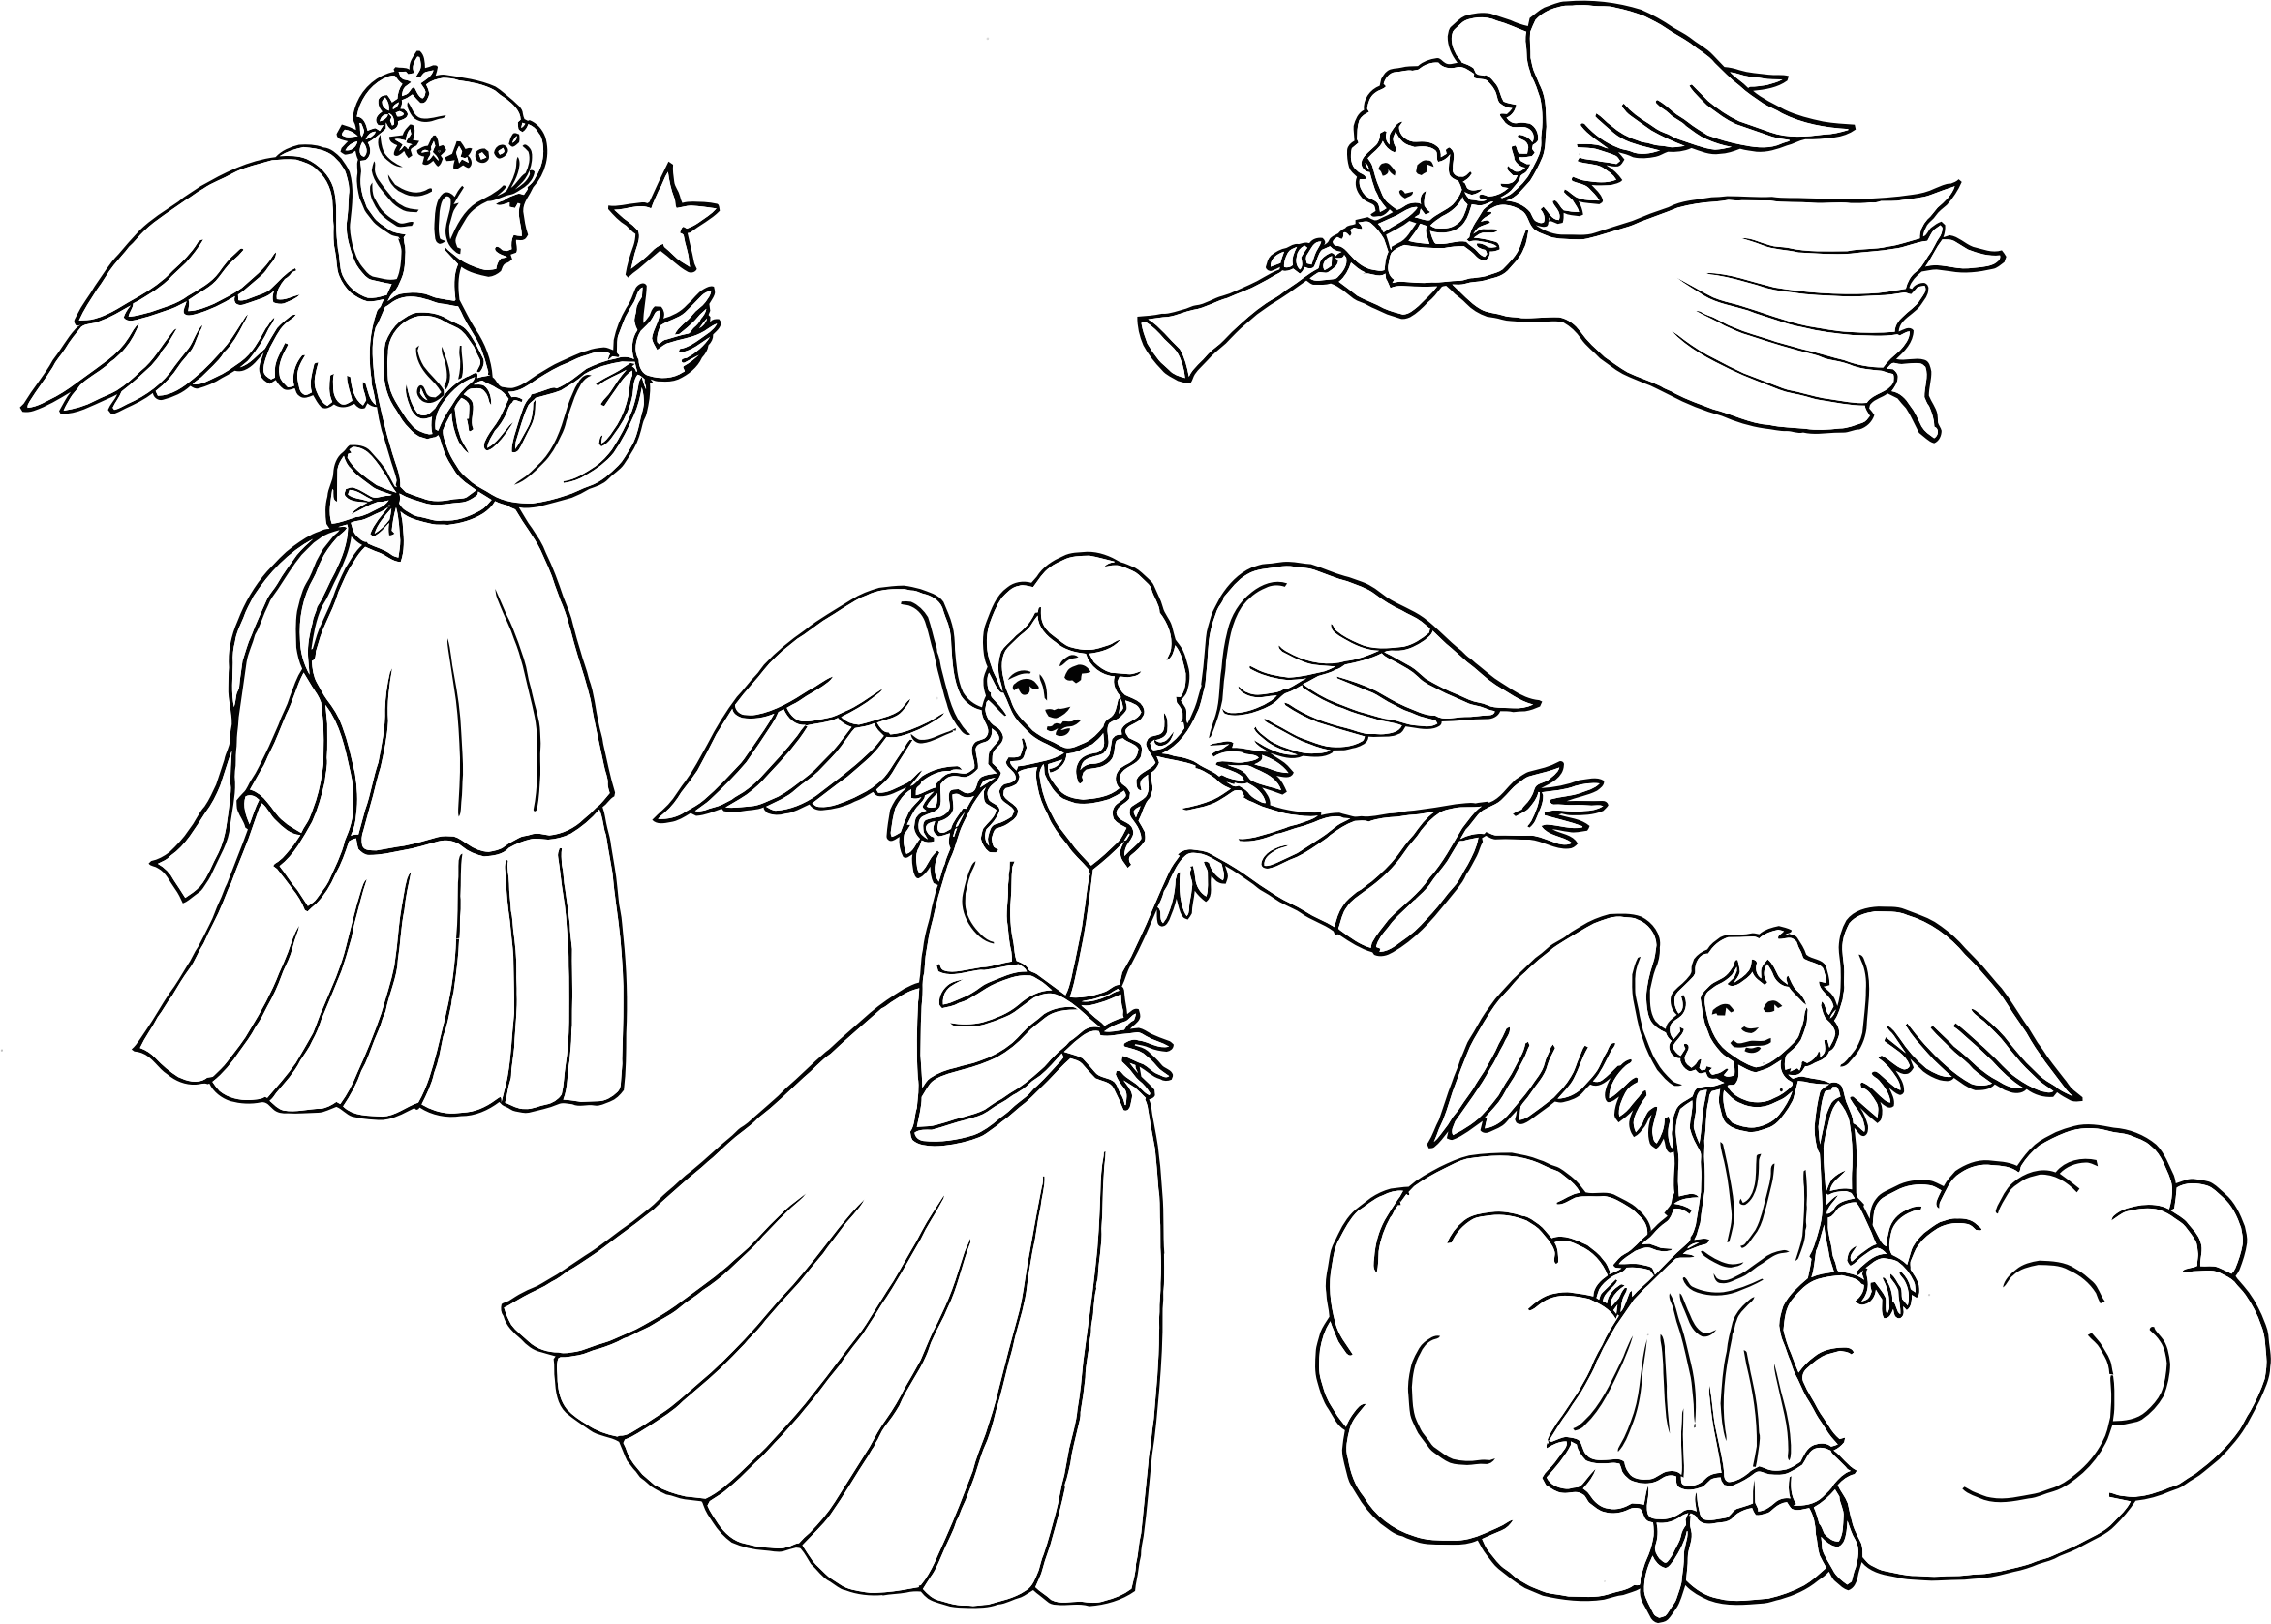 Clipart angel line art. Angels drawing at getdrawings